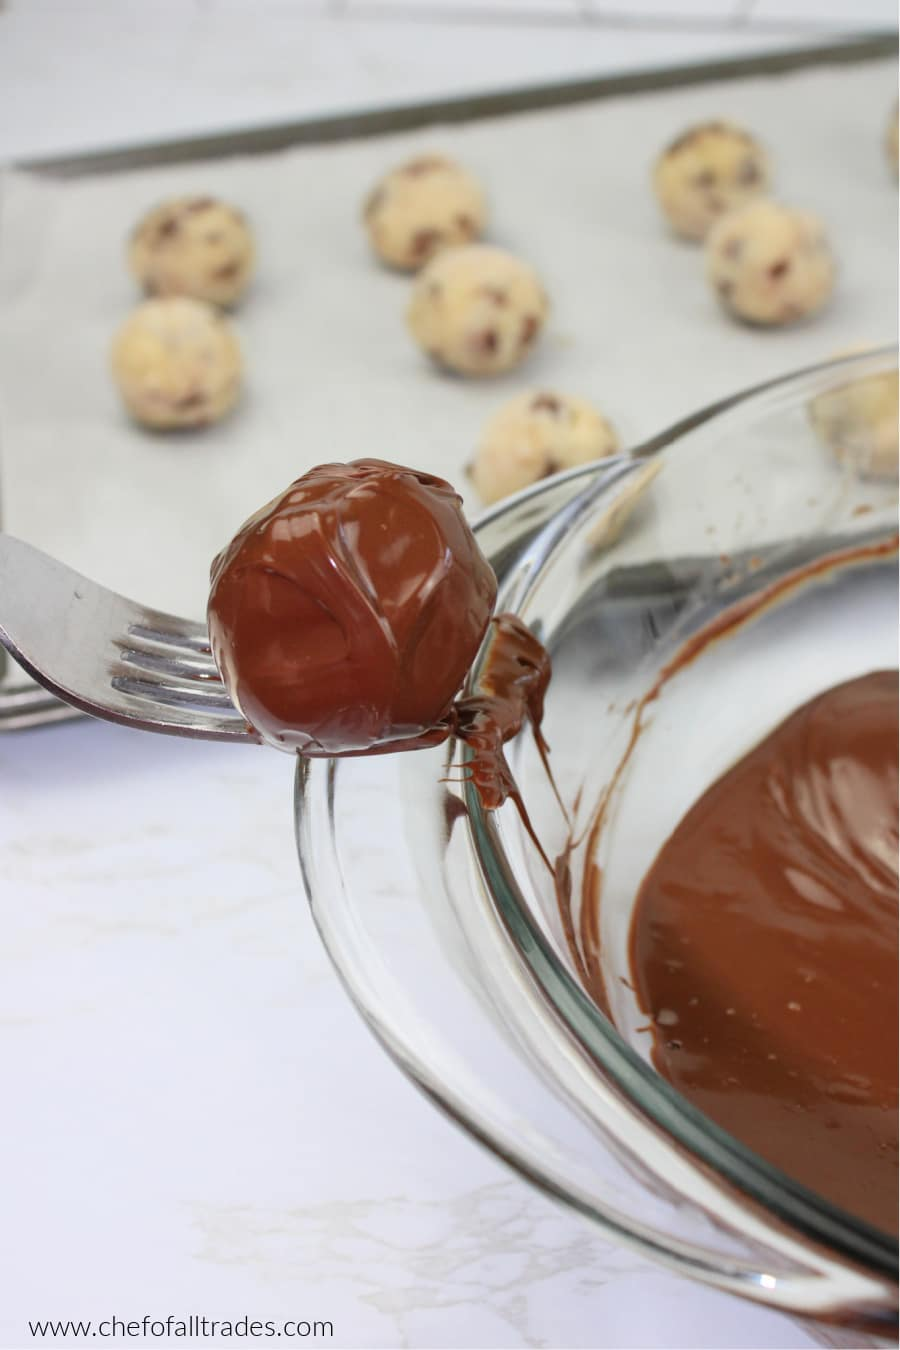 Chocolate Chip Cookie Dough Truffle on a fork scraping fork on edge of bowl